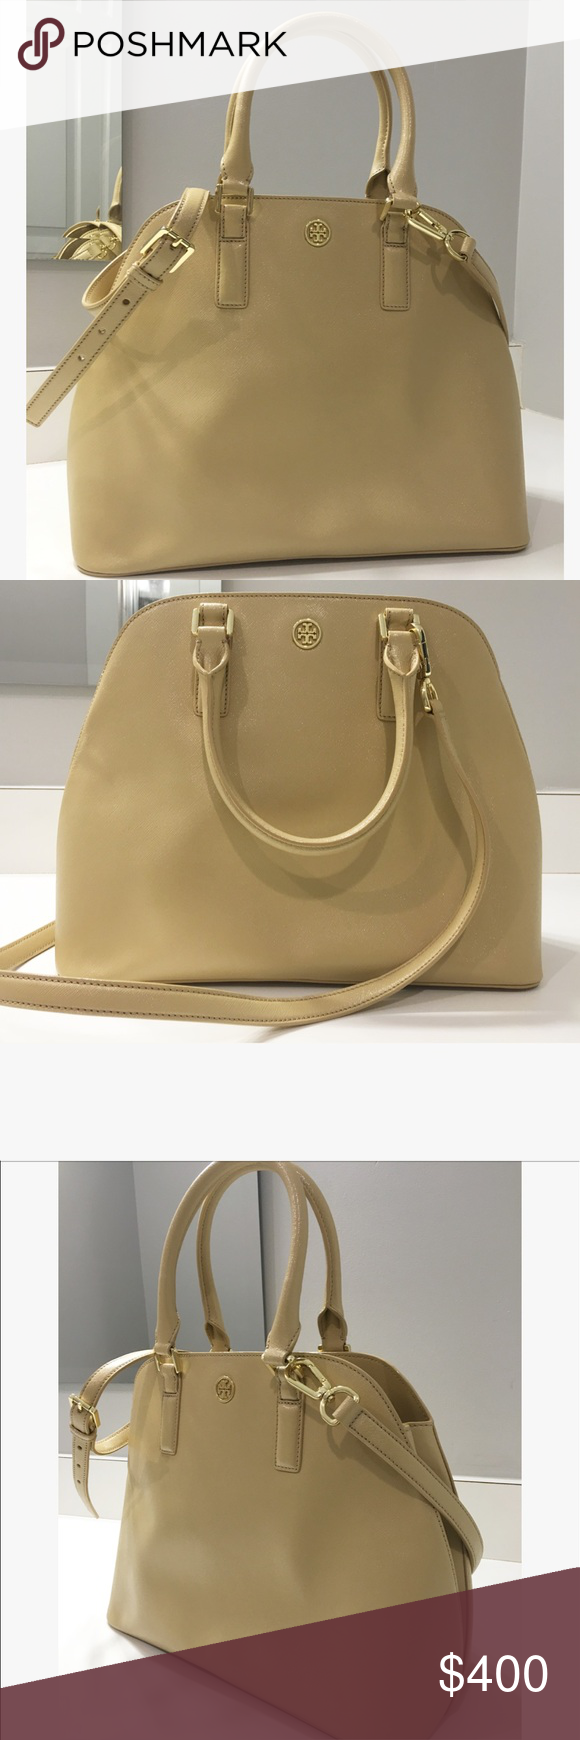 NEW Tory Burch Robinson Satchel Brand New without tags. Gorgeous nude colored Robinson satchel with gold hard wear. Double handles with removable shoulder strap. Tory Burch Bags Satchels